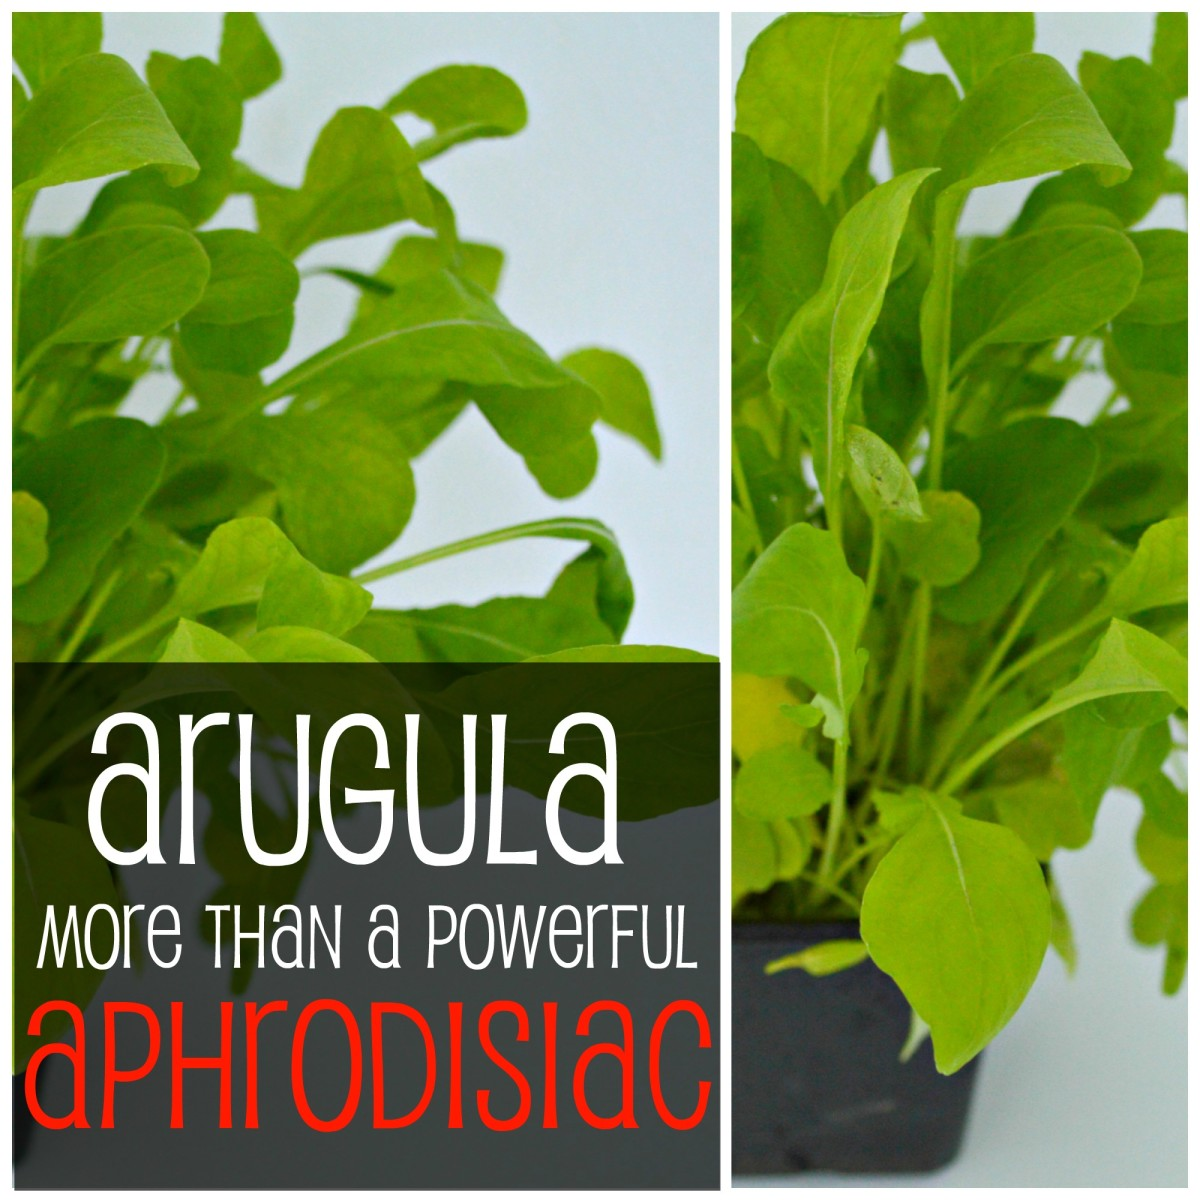 Arugula or salad rocket is revered as a libido enhancer throughout history, but that's not all! There's more to this peppery leaf, from cancer-fighting to bone health & more!